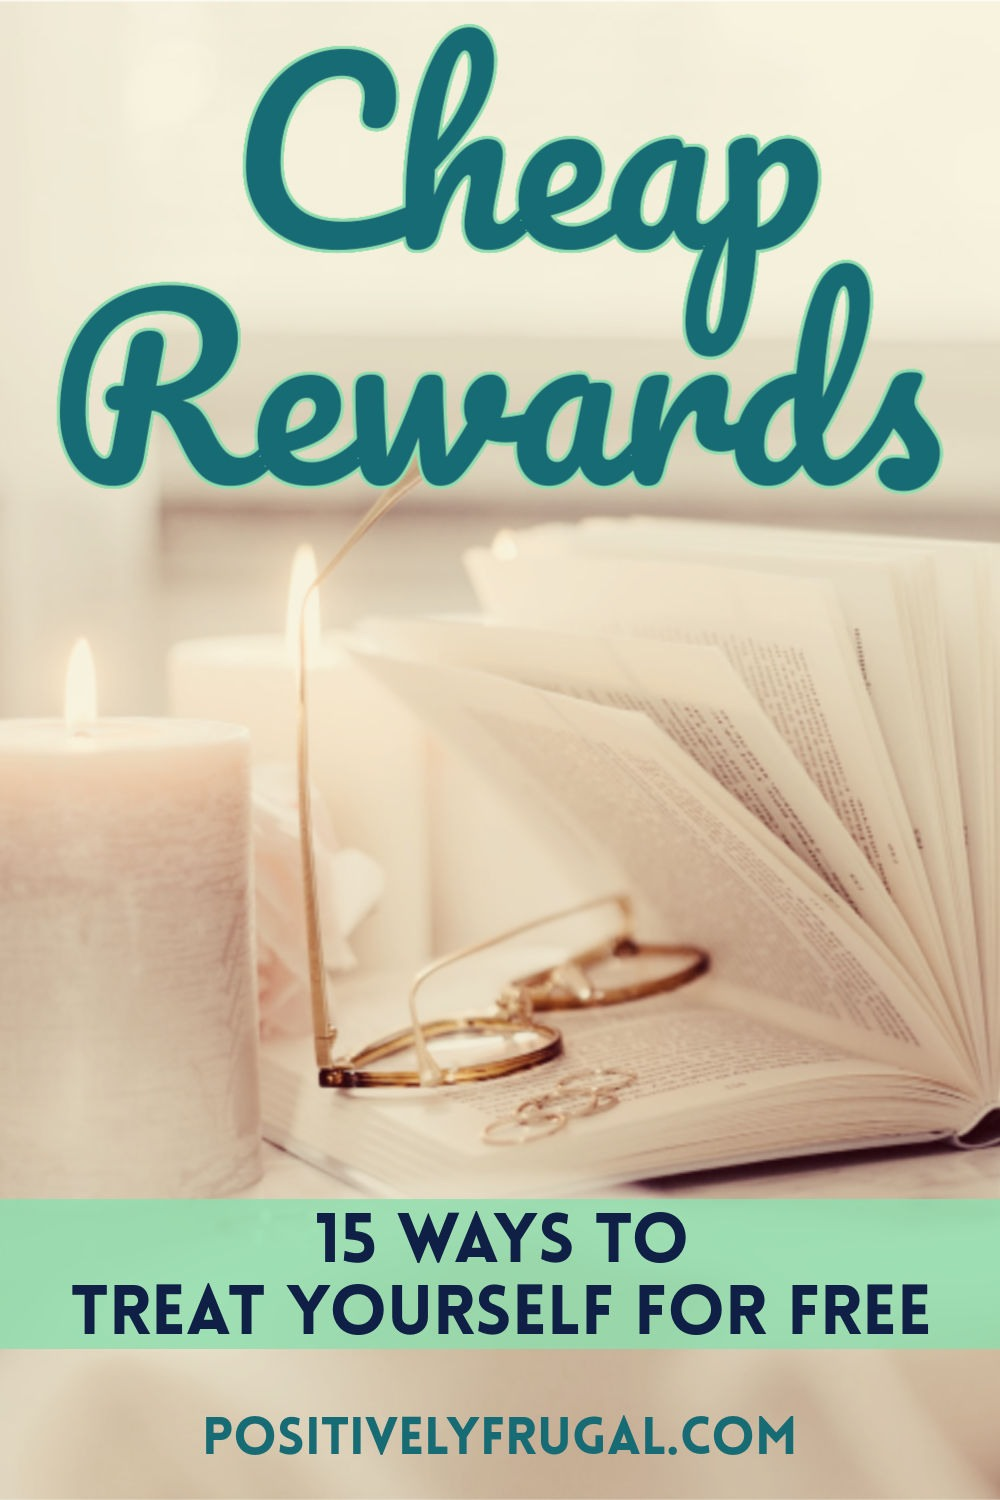 Cheap Rewards Ways To Treat Yourself for Free by PositivelyFrugal.com